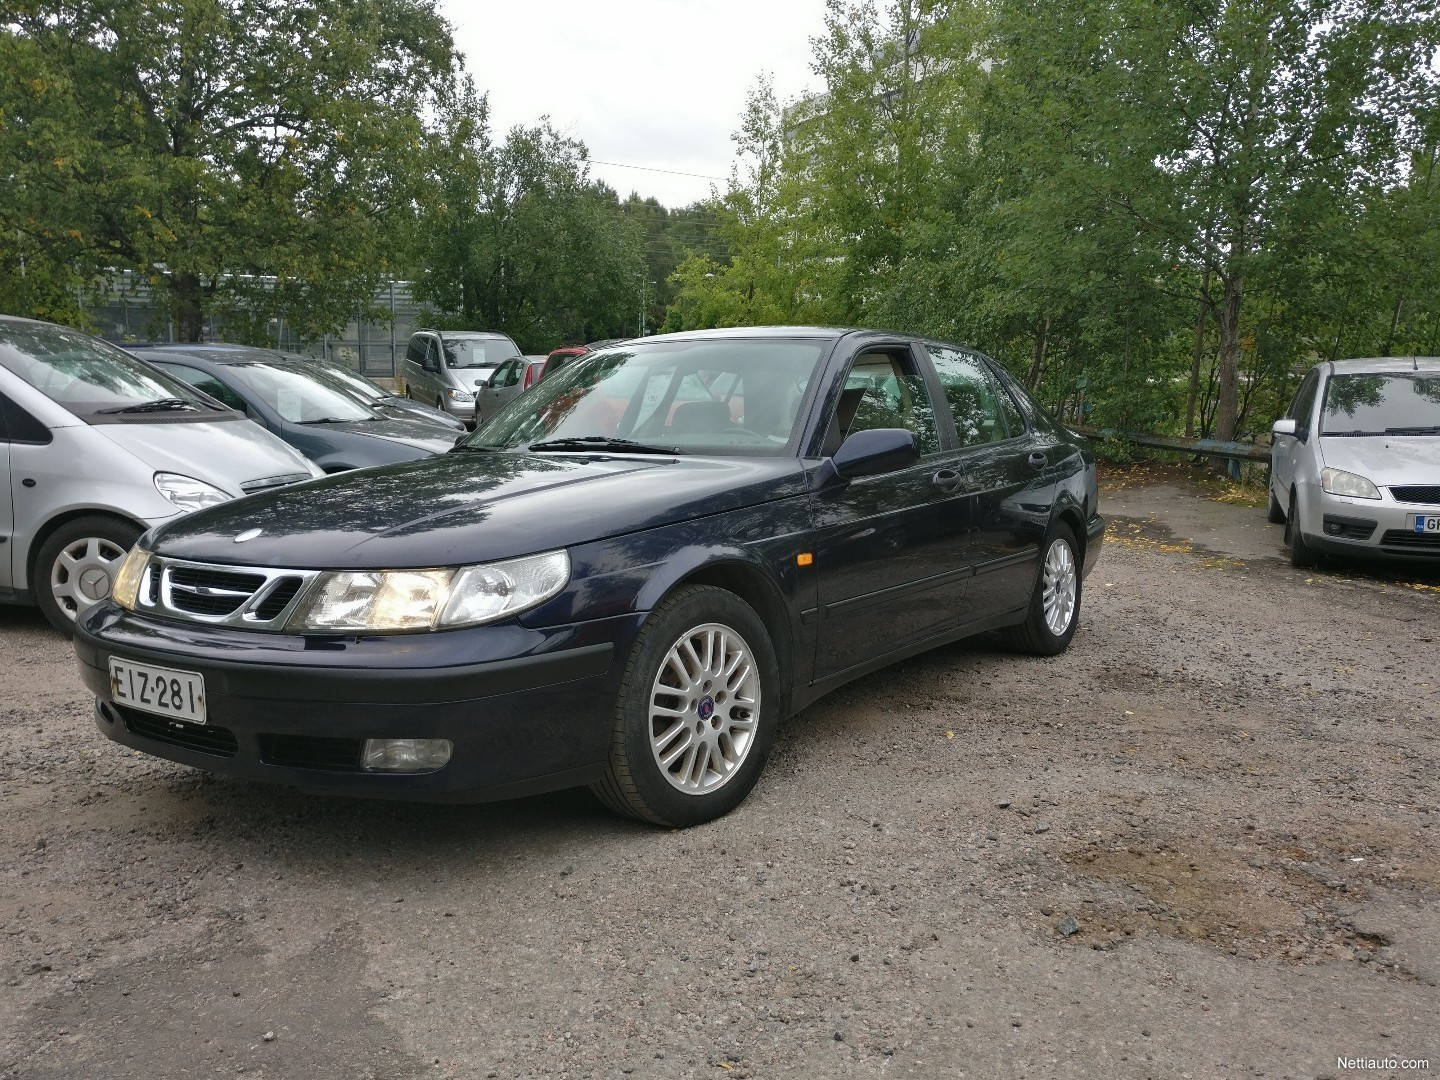 saab 9 5 2 3 turbo sedan 1999 used vehicle nettiauto. Black Bedroom Furniture Sets. Home Design Ideas